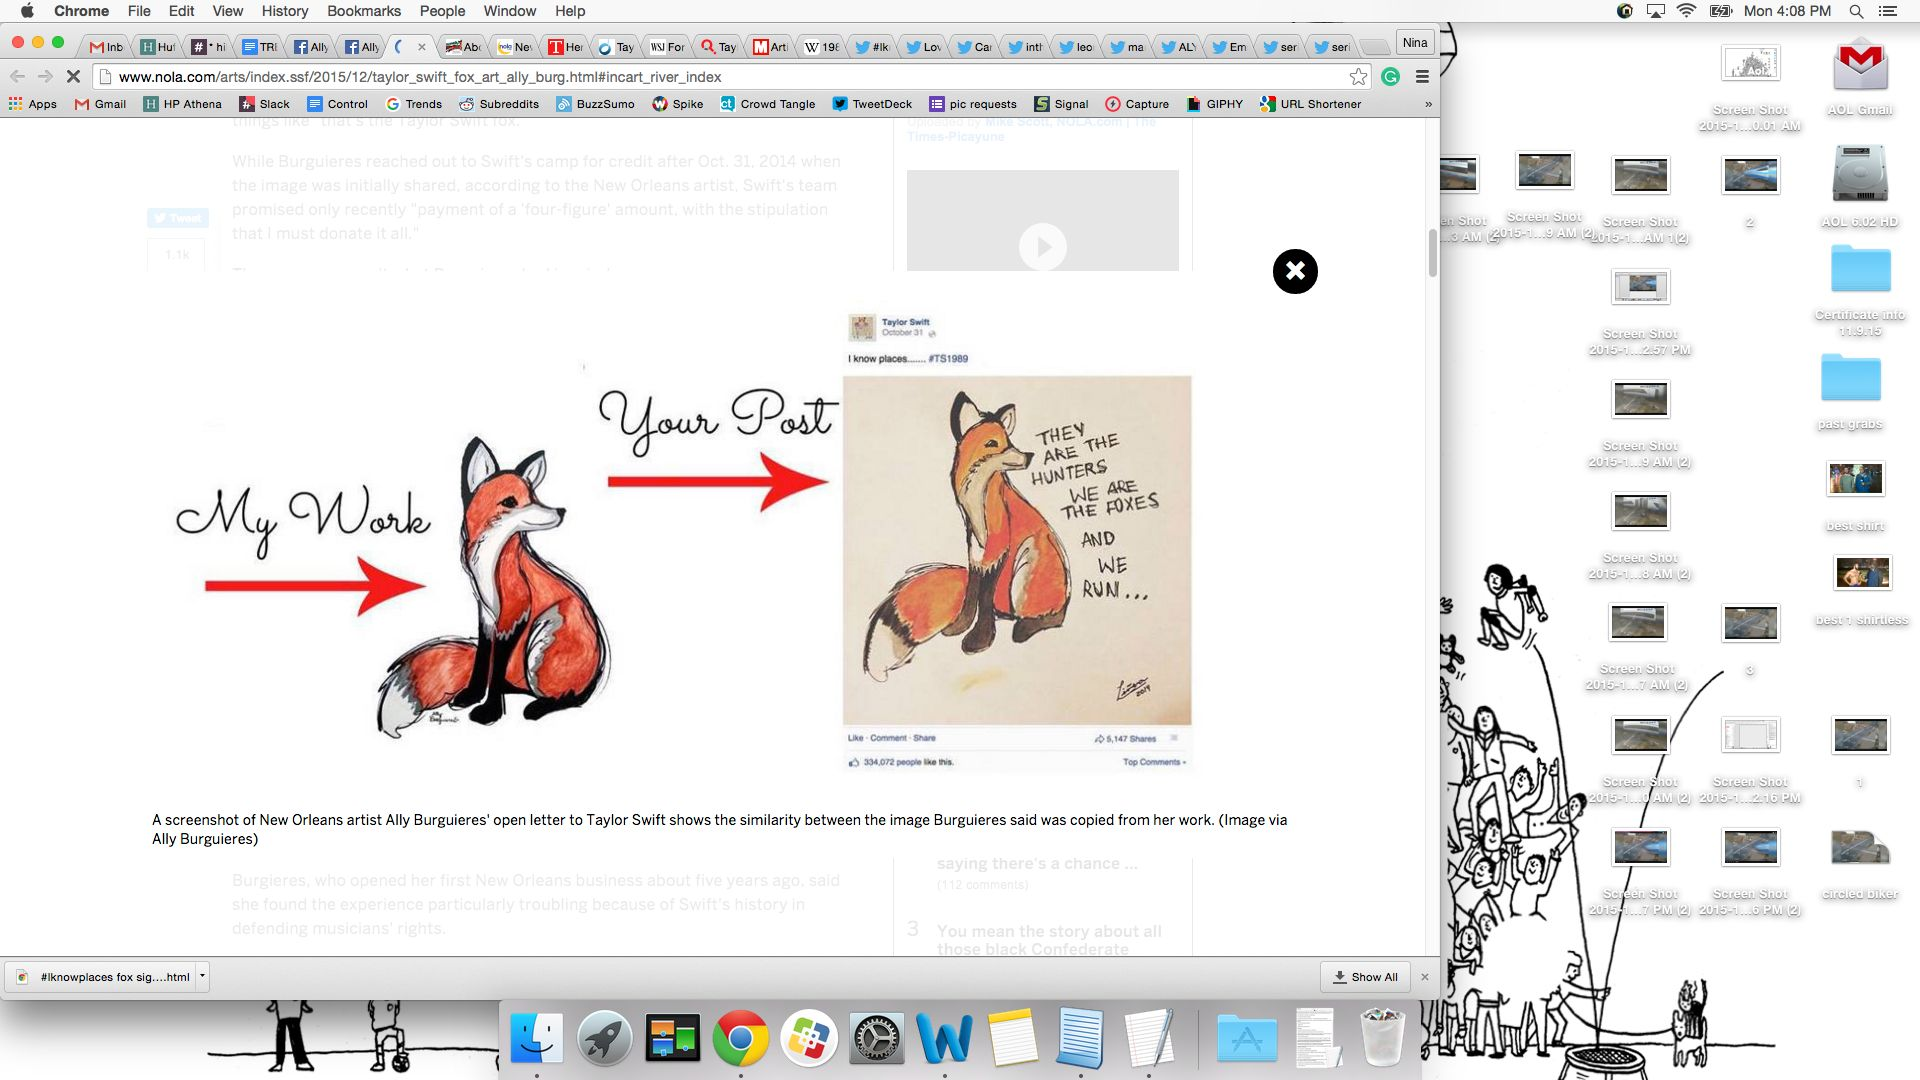 Look familiar?Artist Ally Burguieres claims Taylor Swift used her artwork of this fox without her permission to promote